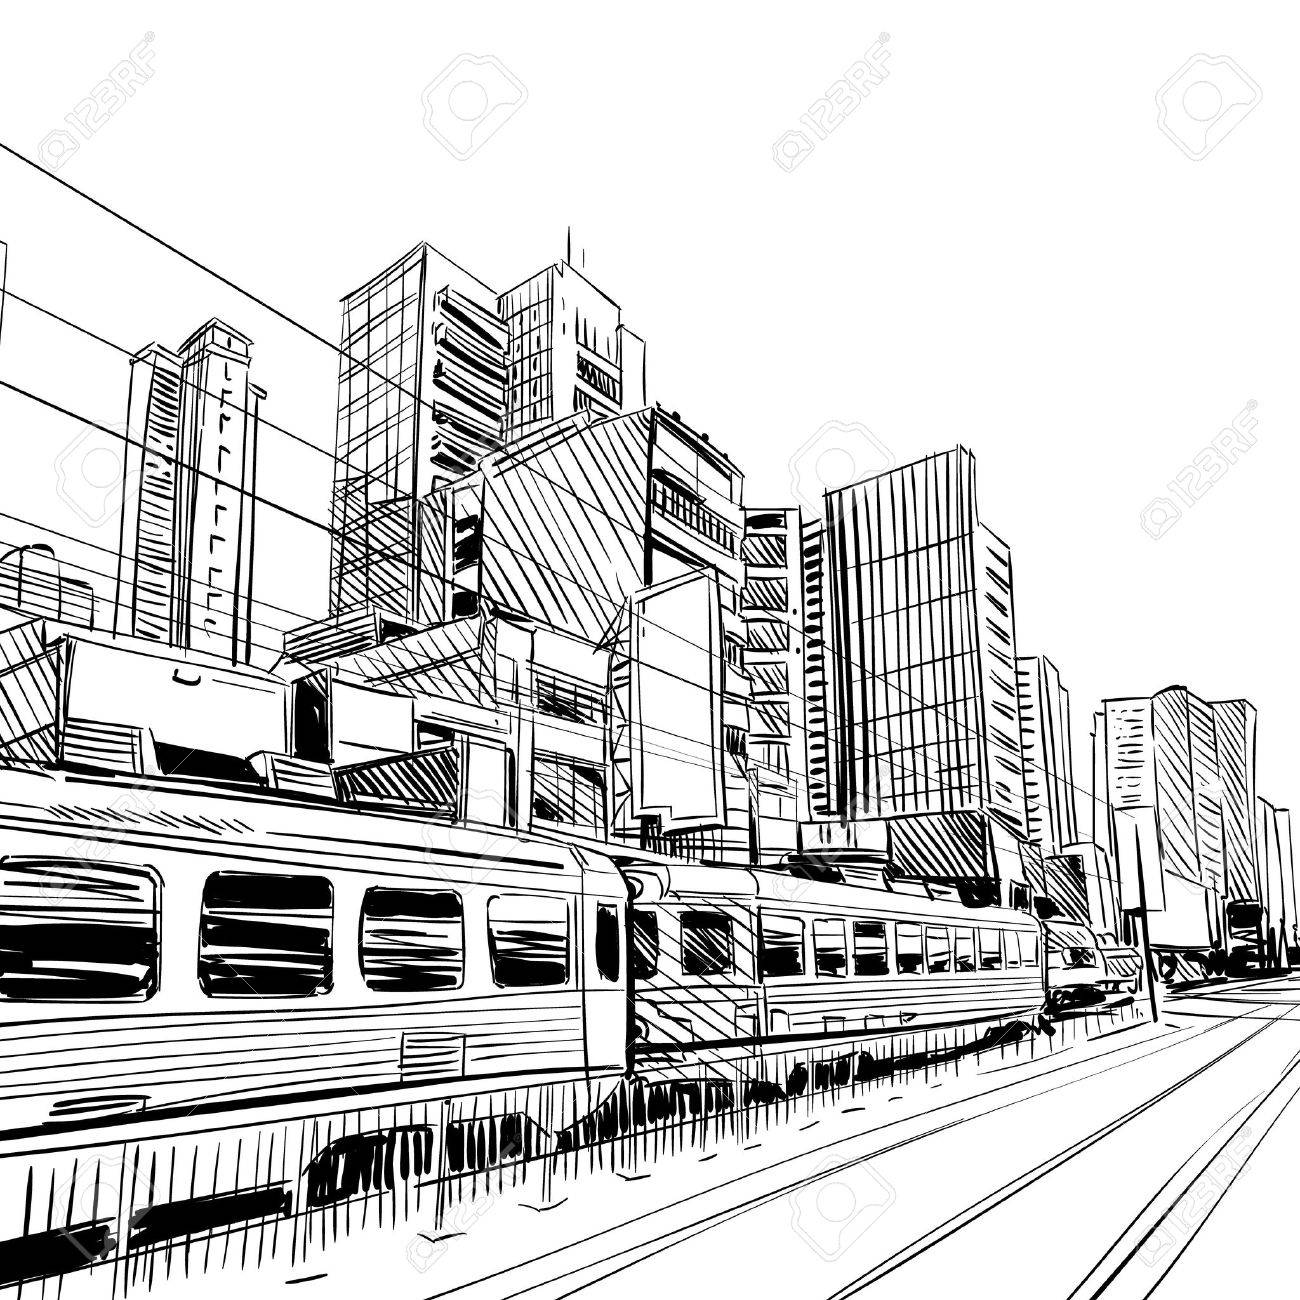 1300x1300 China City Sketch, Design. Illustration Royalty Free Cliparts